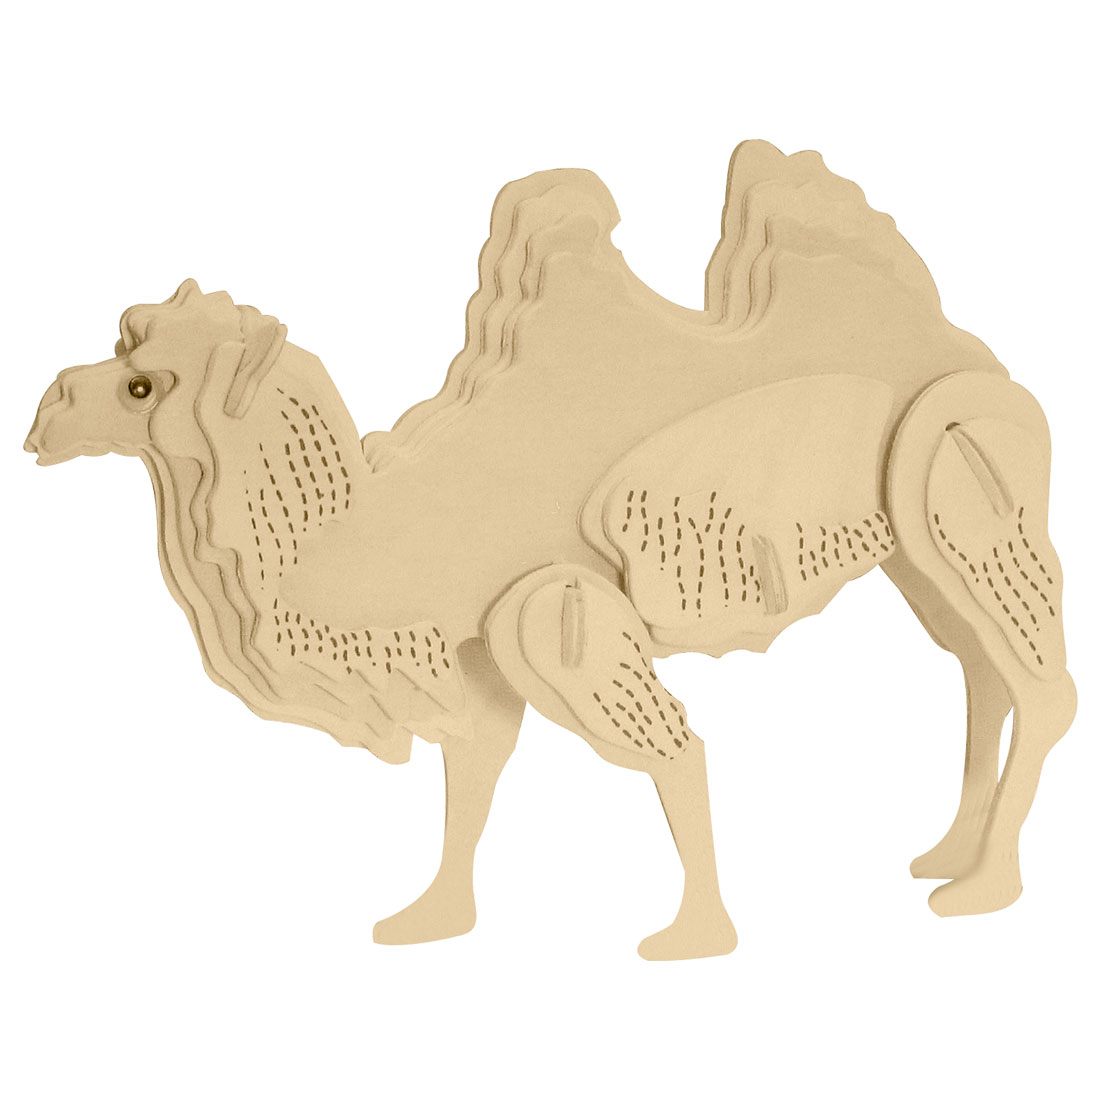 Toys - Wooden Puzzle Toy Models Camel